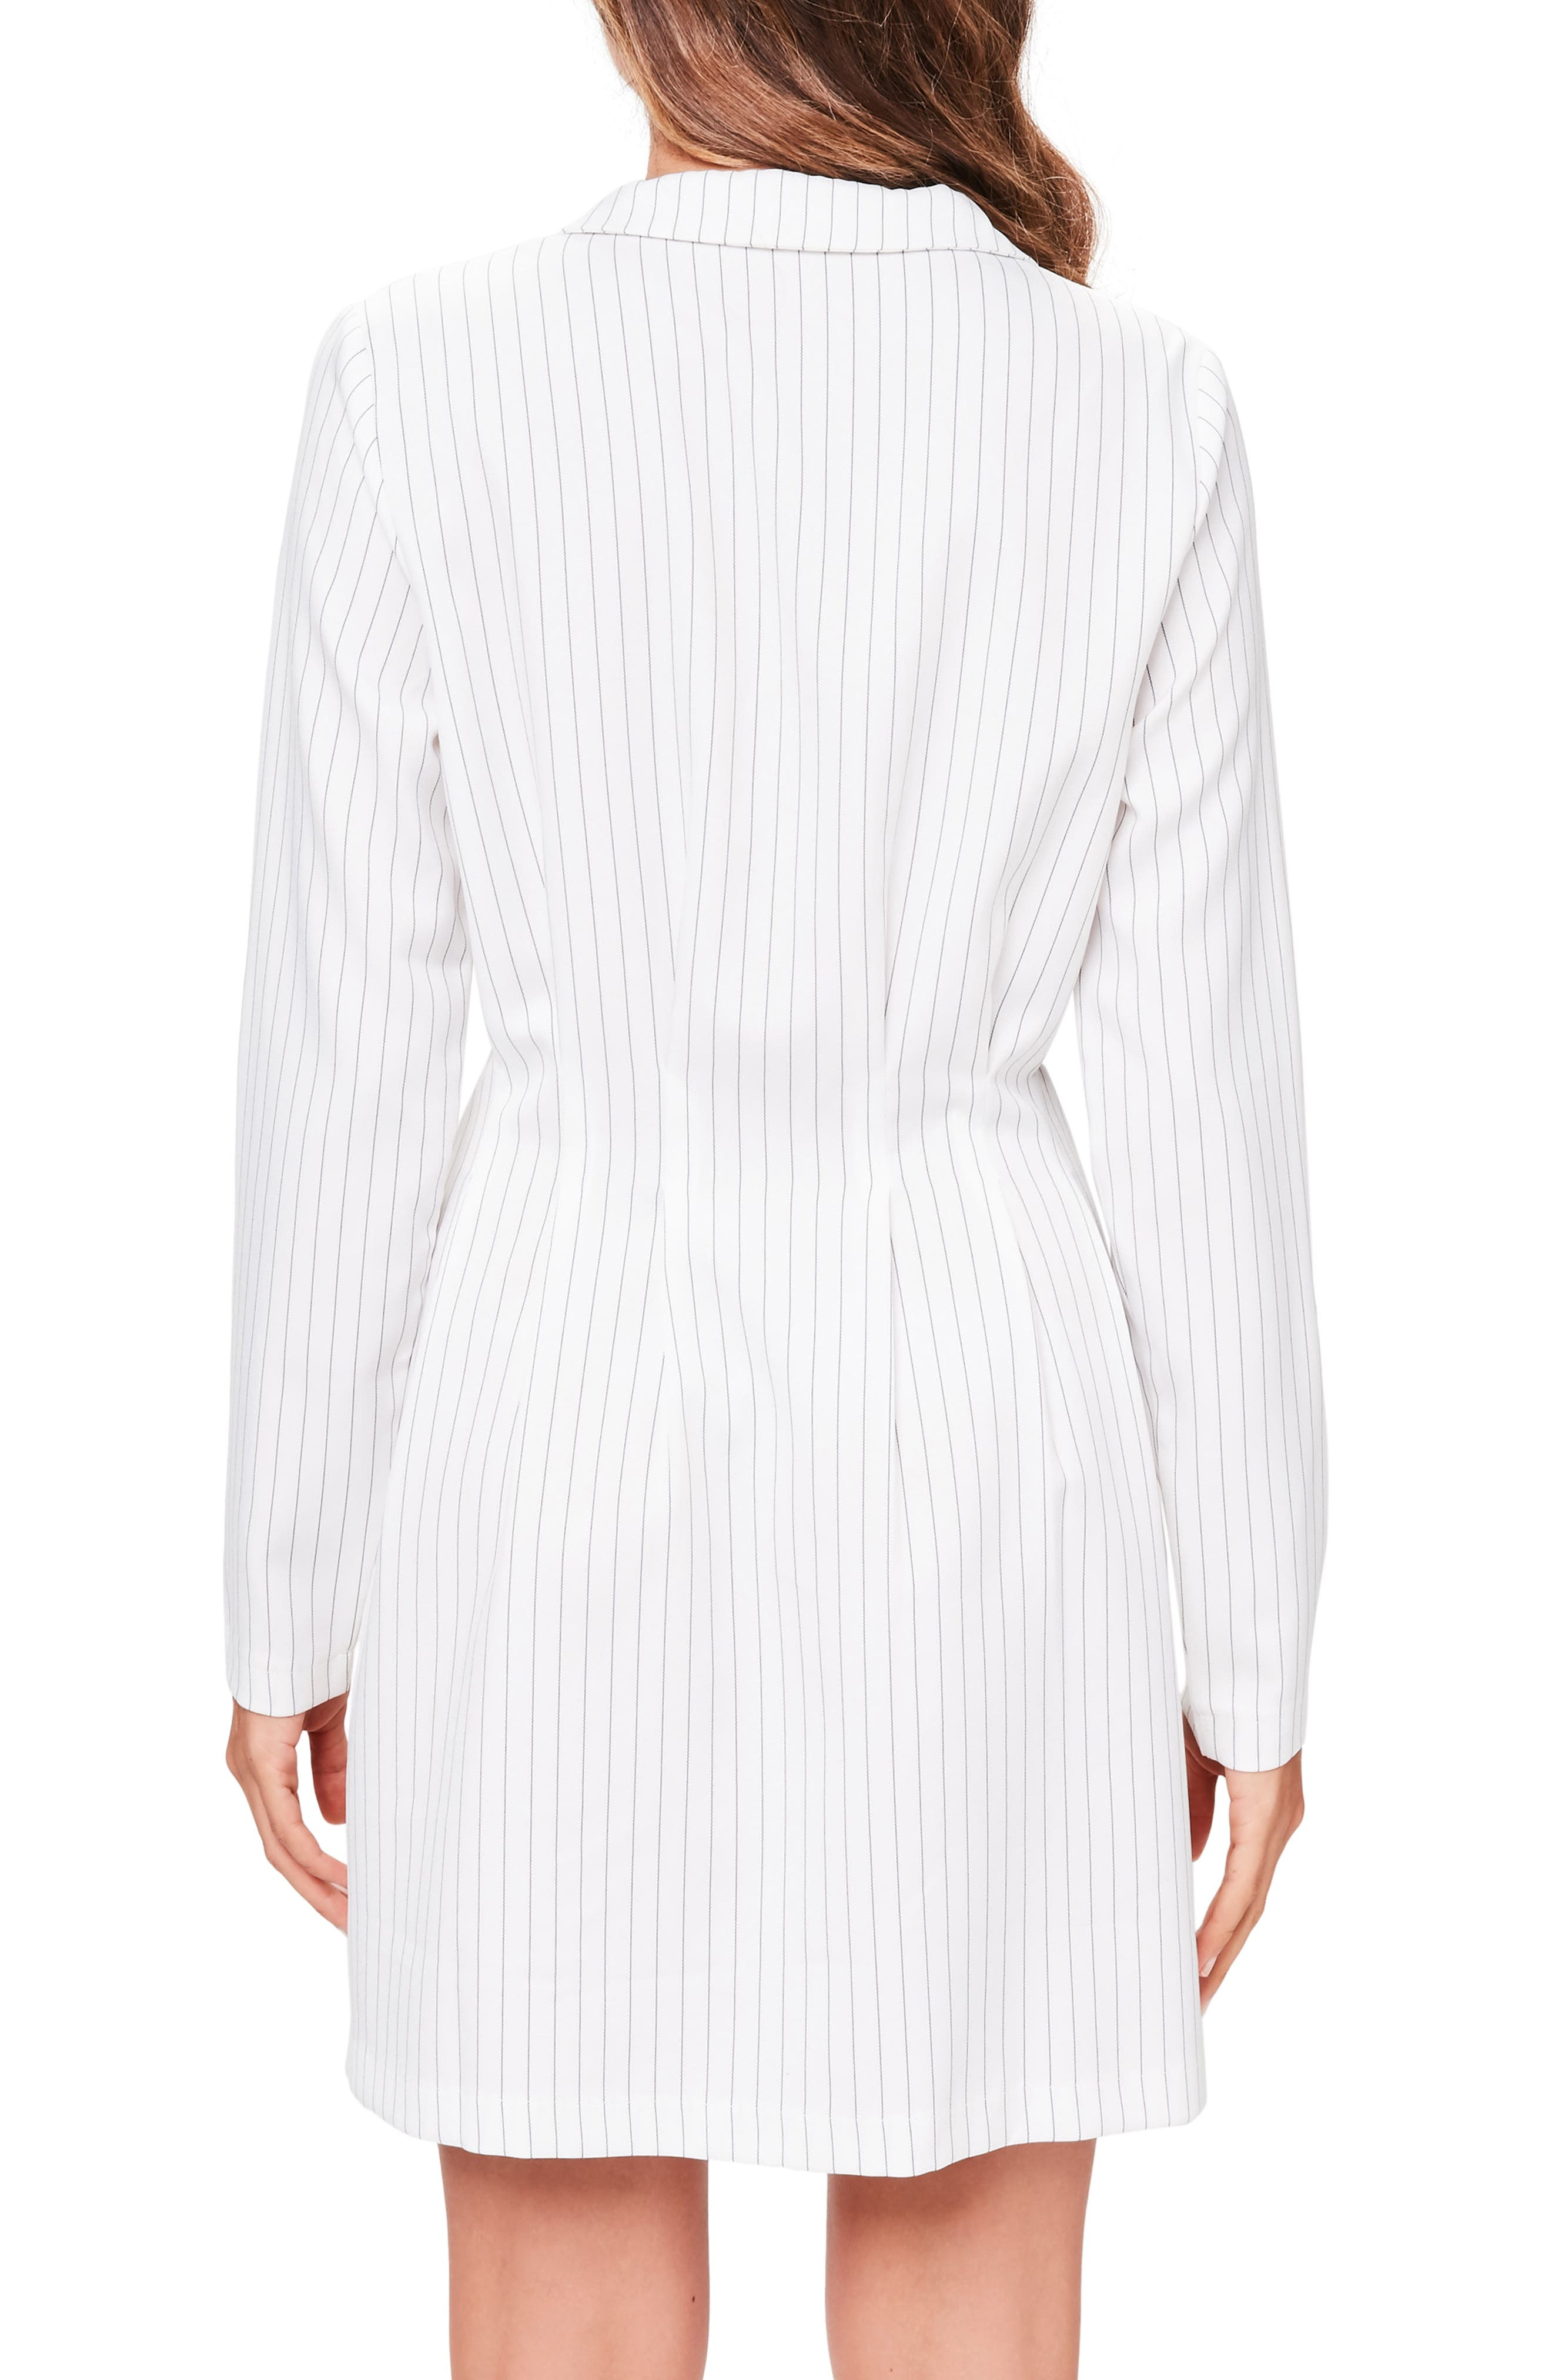 Pinstripe Blazer Dress,                             Alternate thumbnail 3, color,                             White